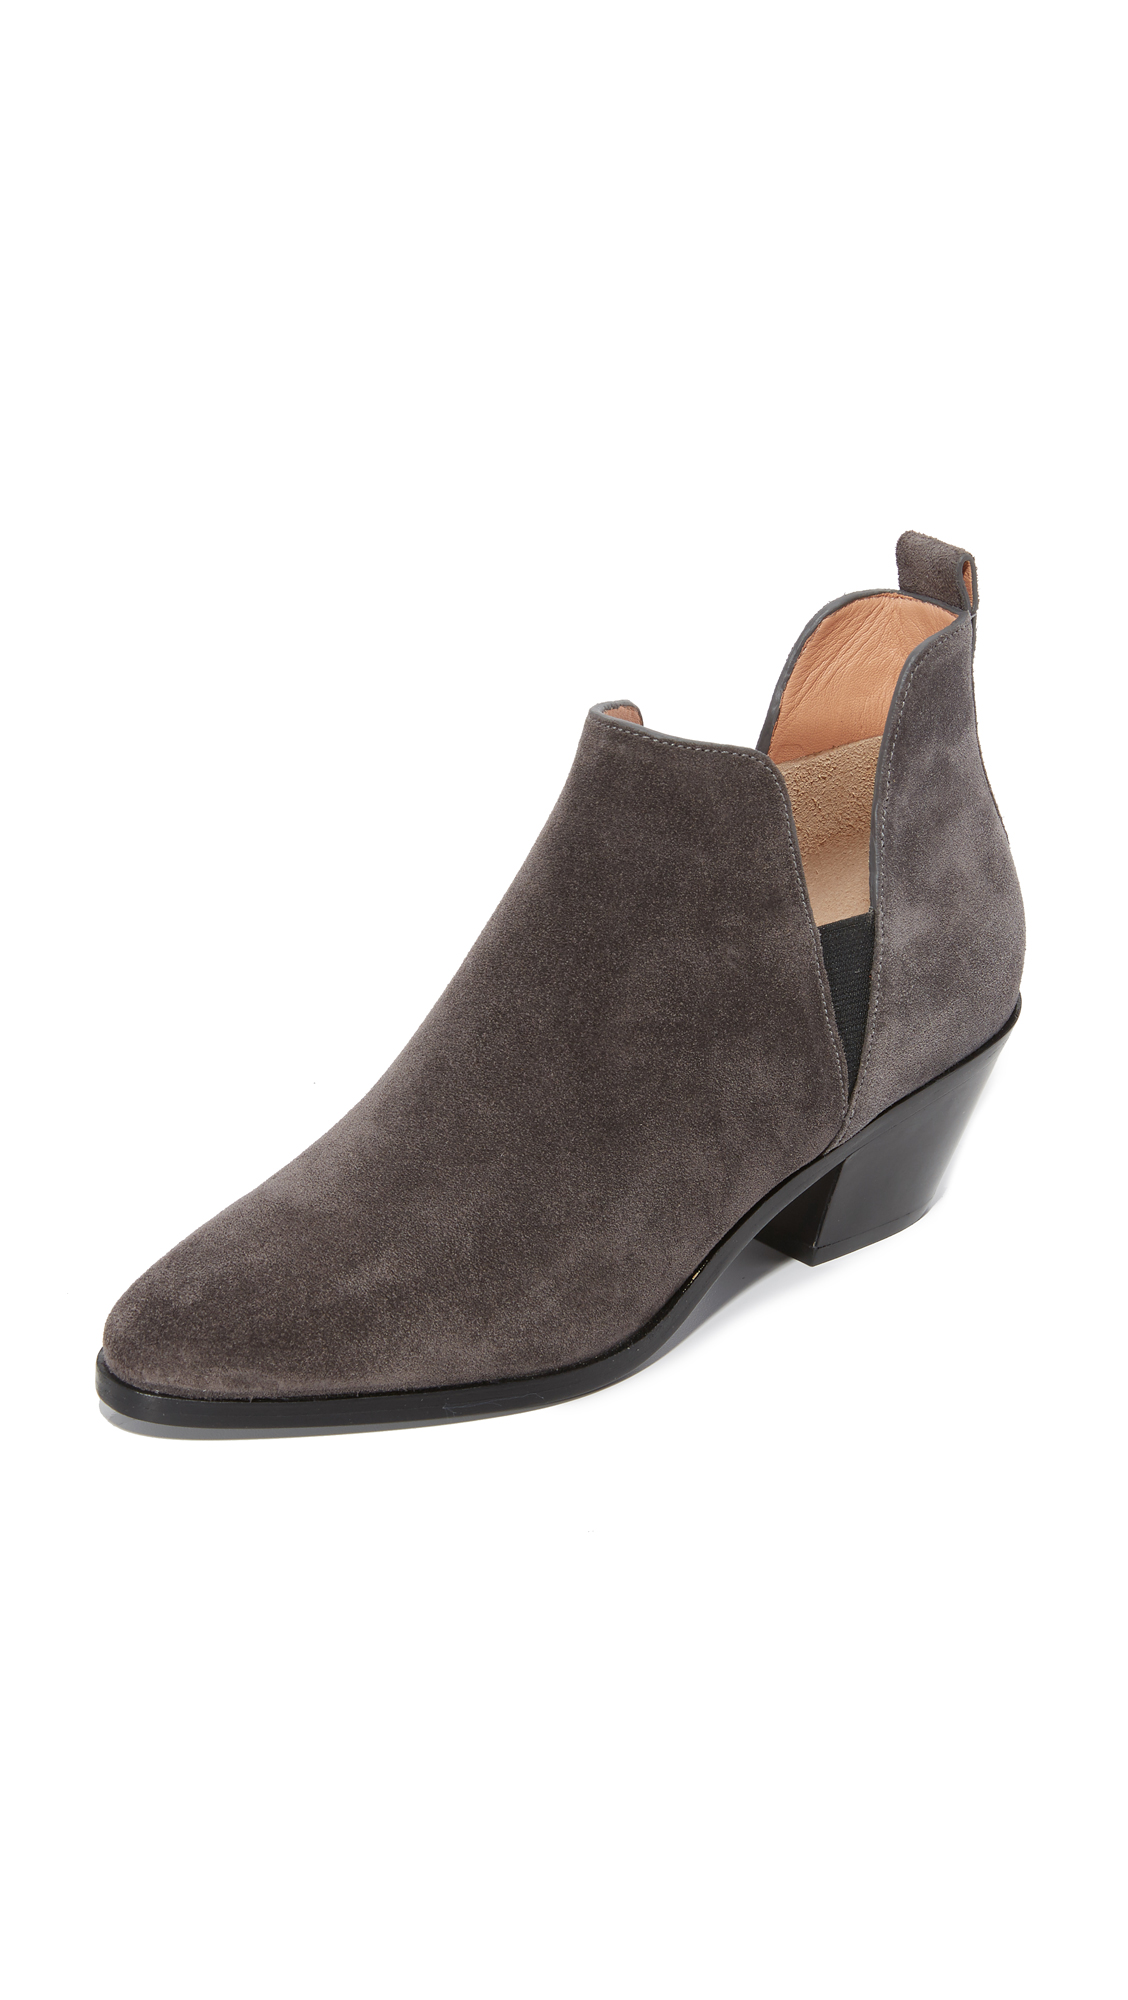 Sigerson Morrison Belin Booties - Litio